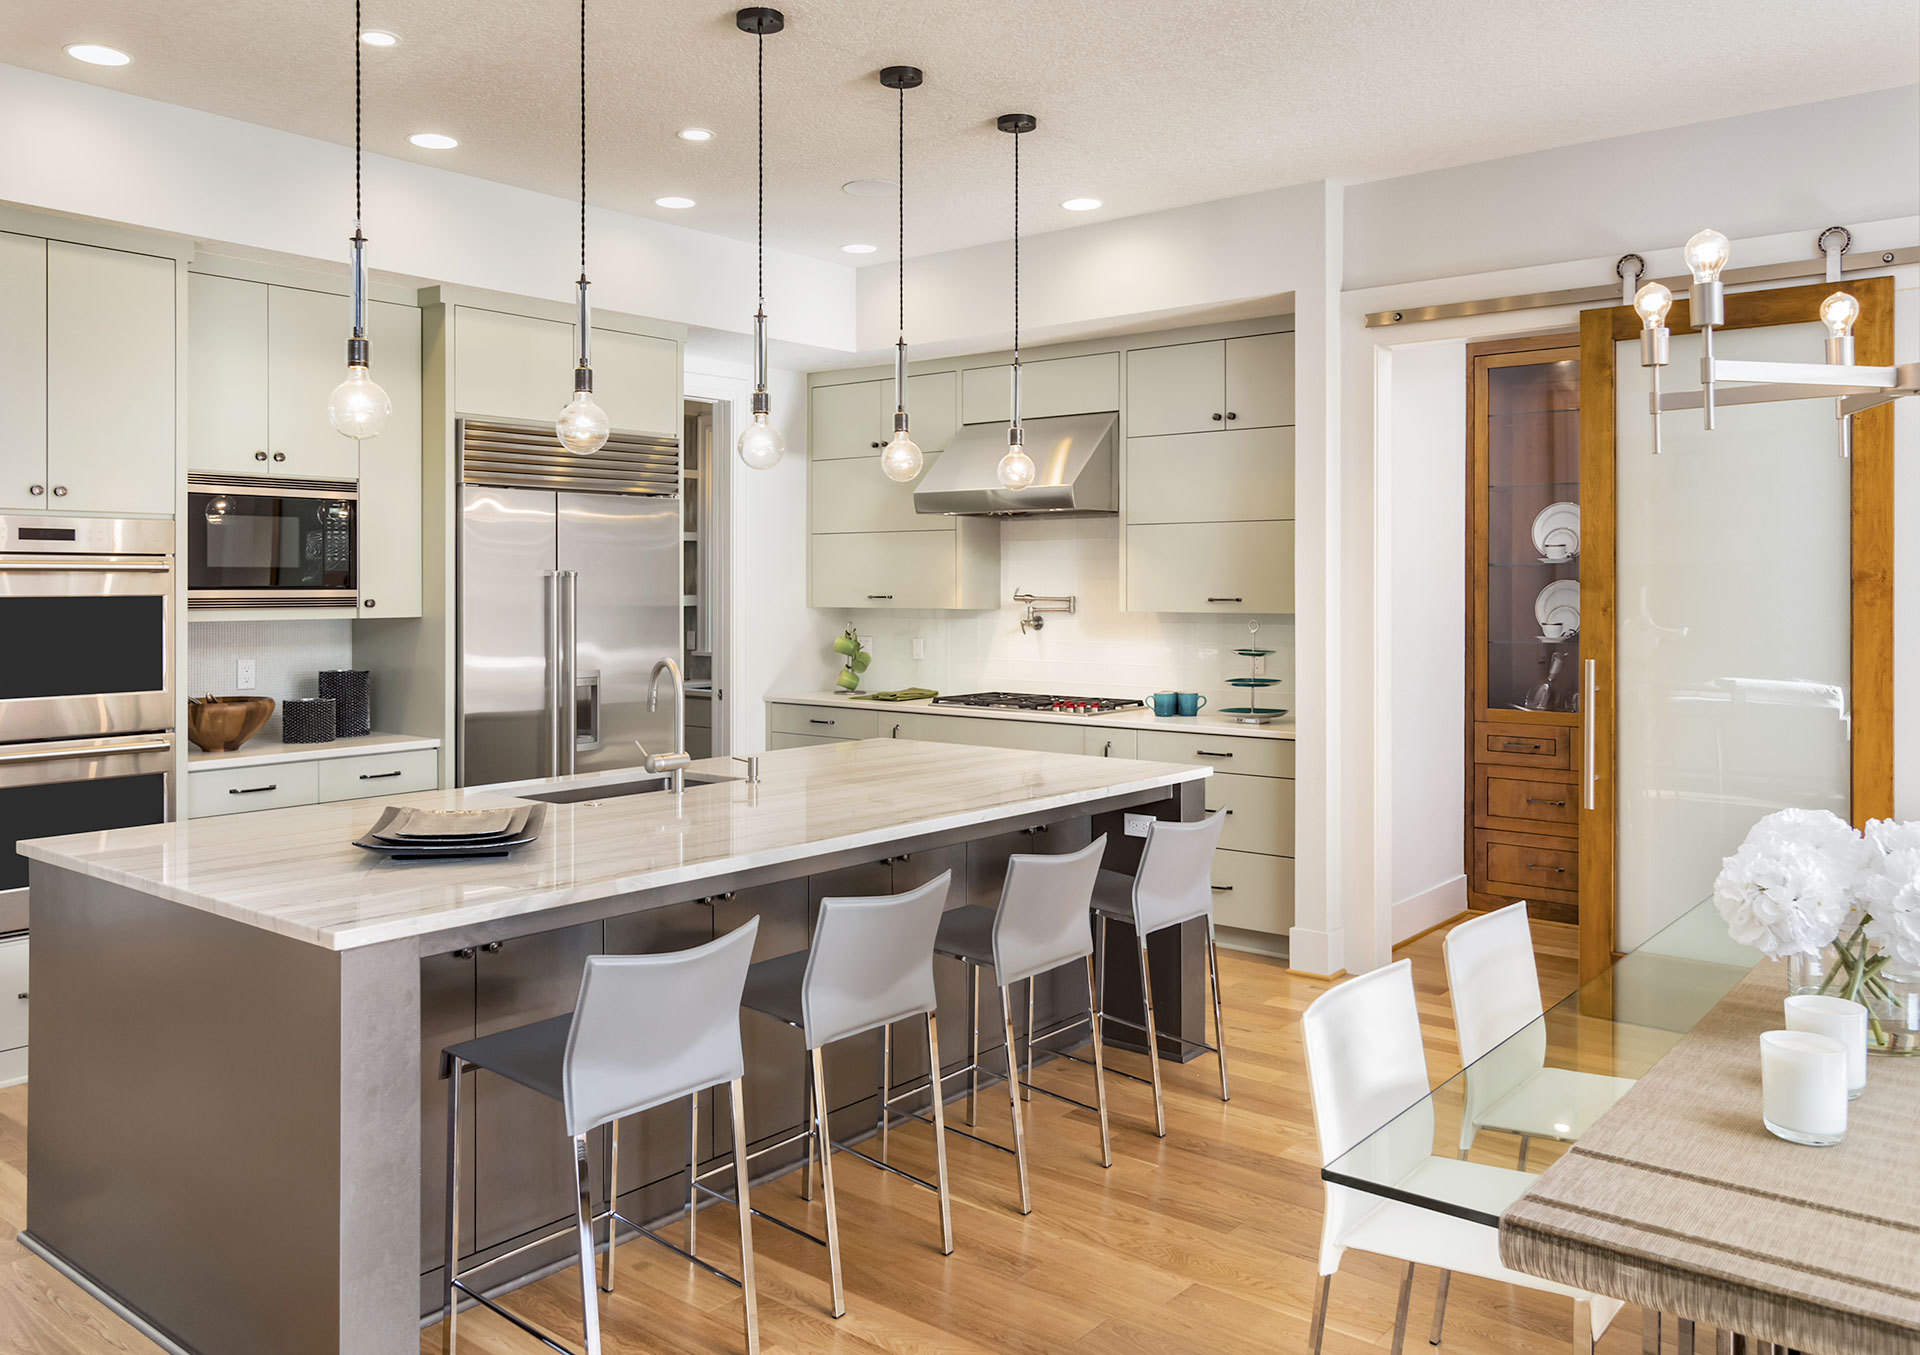 Kitchen Remodeling Contractor Buffalo NY Kitchen Redesign